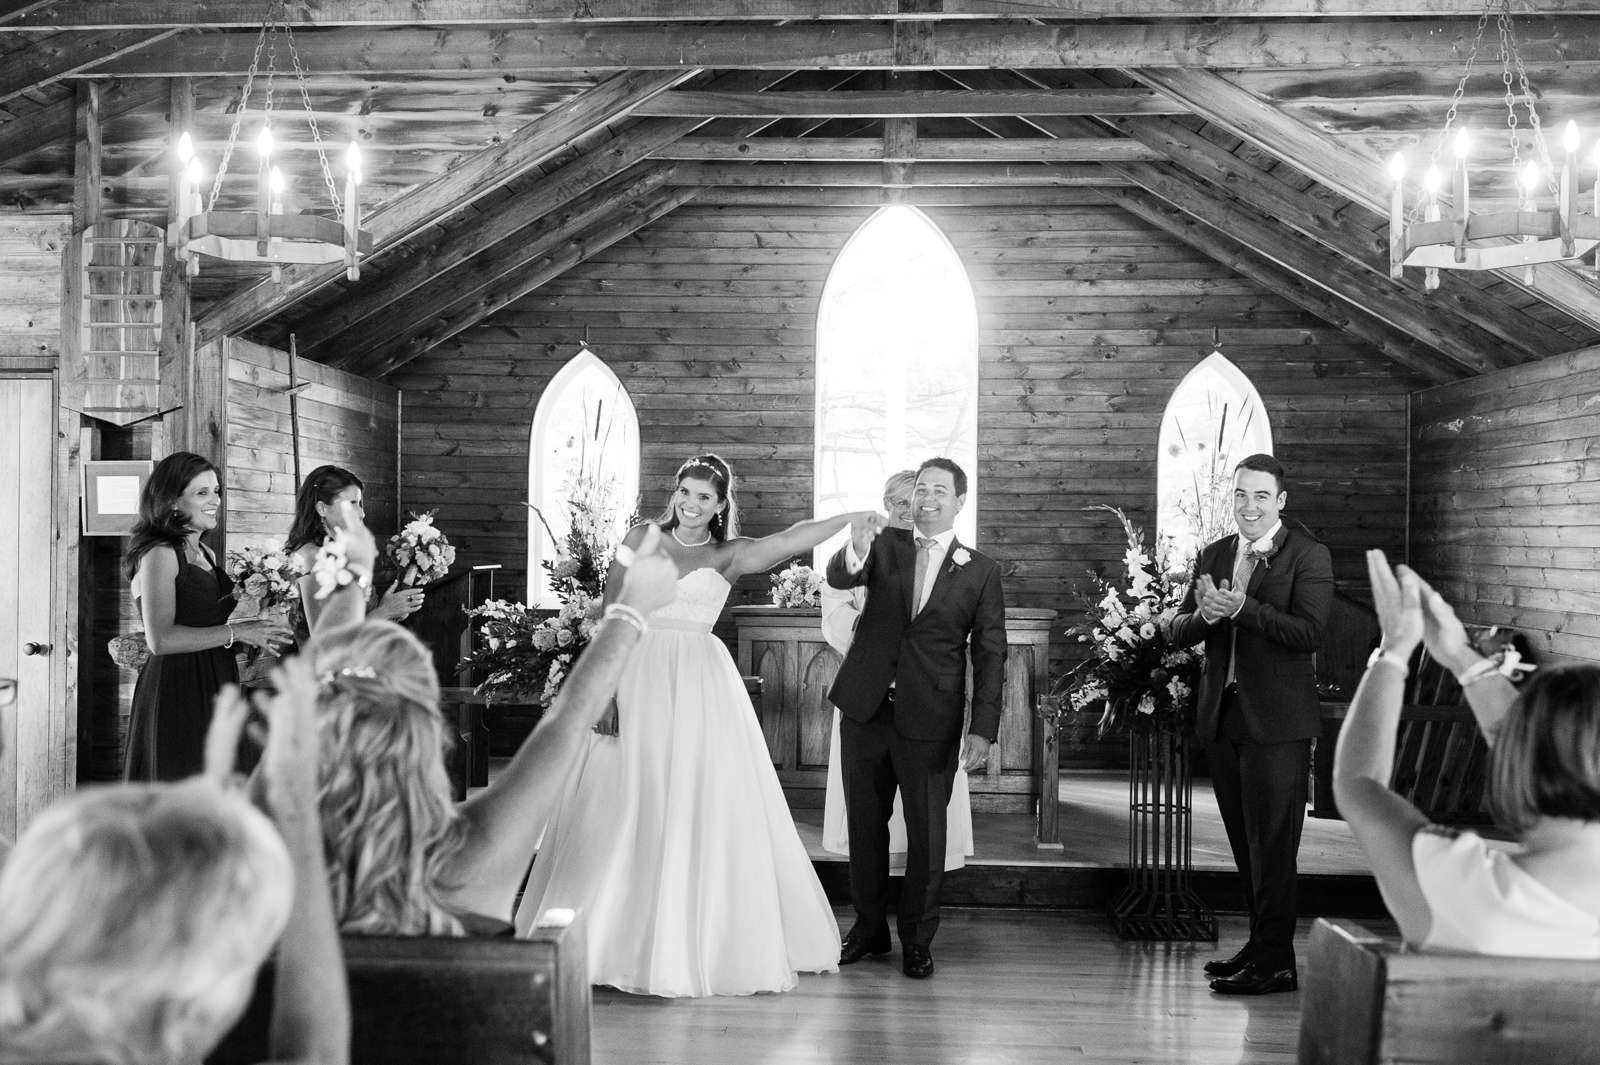 tara mcmullen photography muskoka wedding photographer st peters on the rock wedding photos muskoka wedding photos where to get married in muskoka camp ooch wedding-030